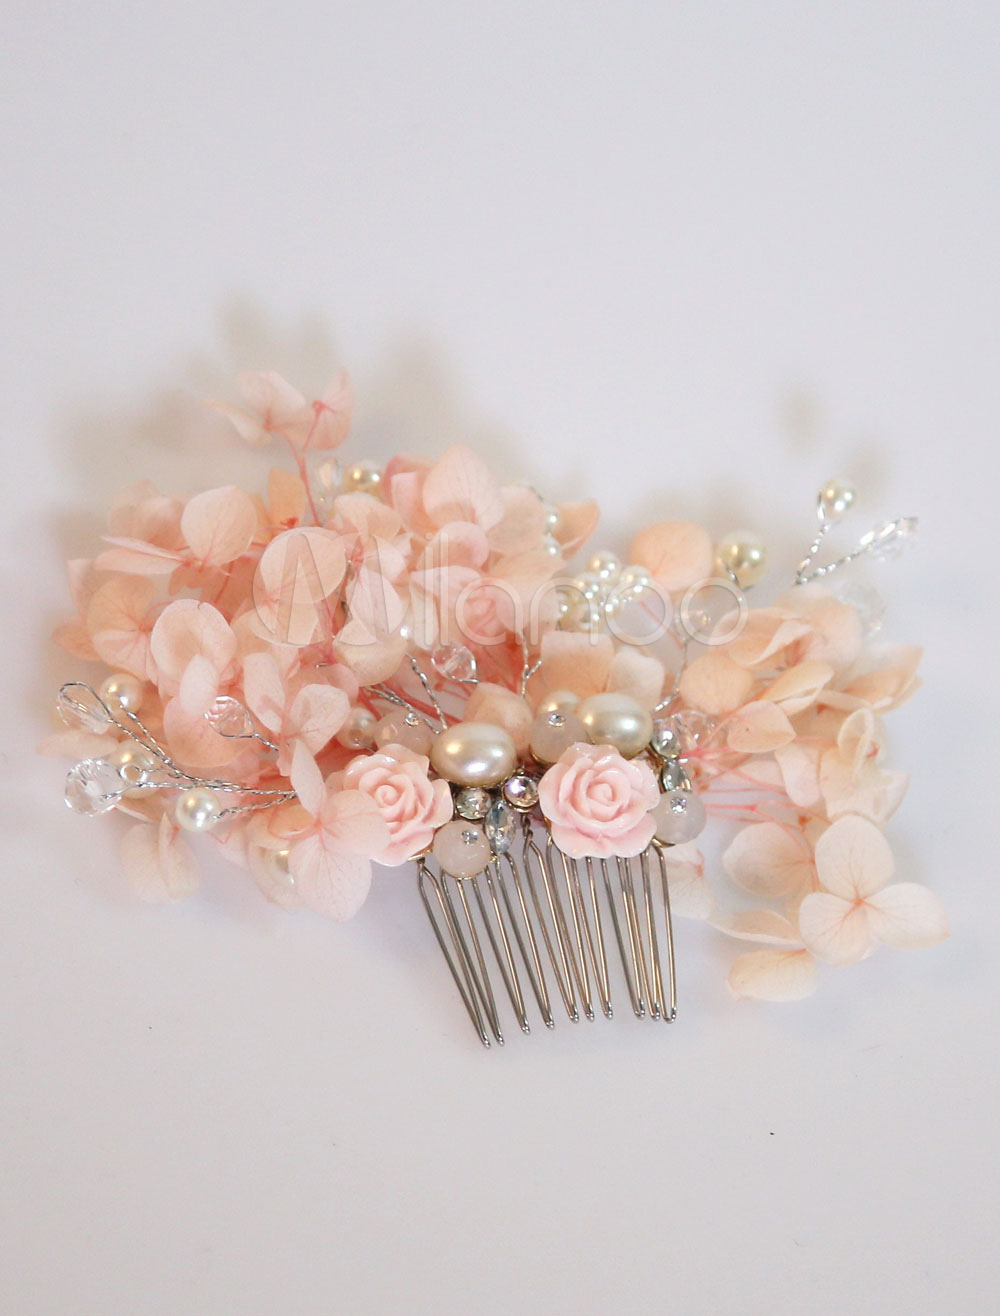 Comb Wedding Headpieces Flowers Pearls Soft Pink Bridal Hair Accessories